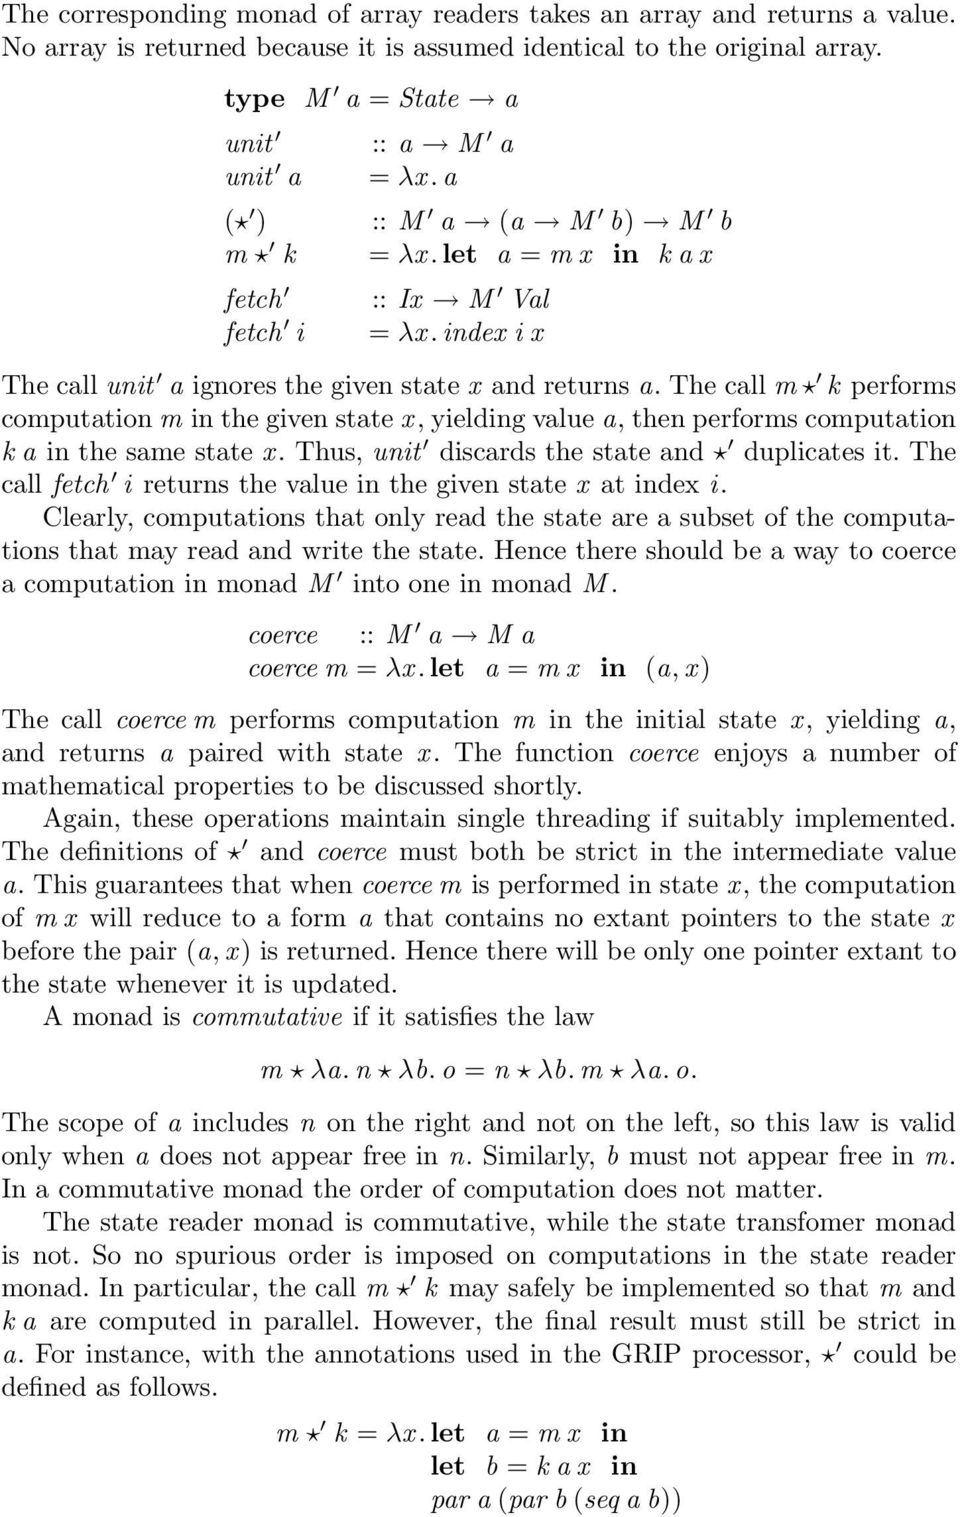 The call m k performs computation m in the given state x, yielding value a, then performs computation k a in the same state x. Thus, unit discards the state and duplicates it.